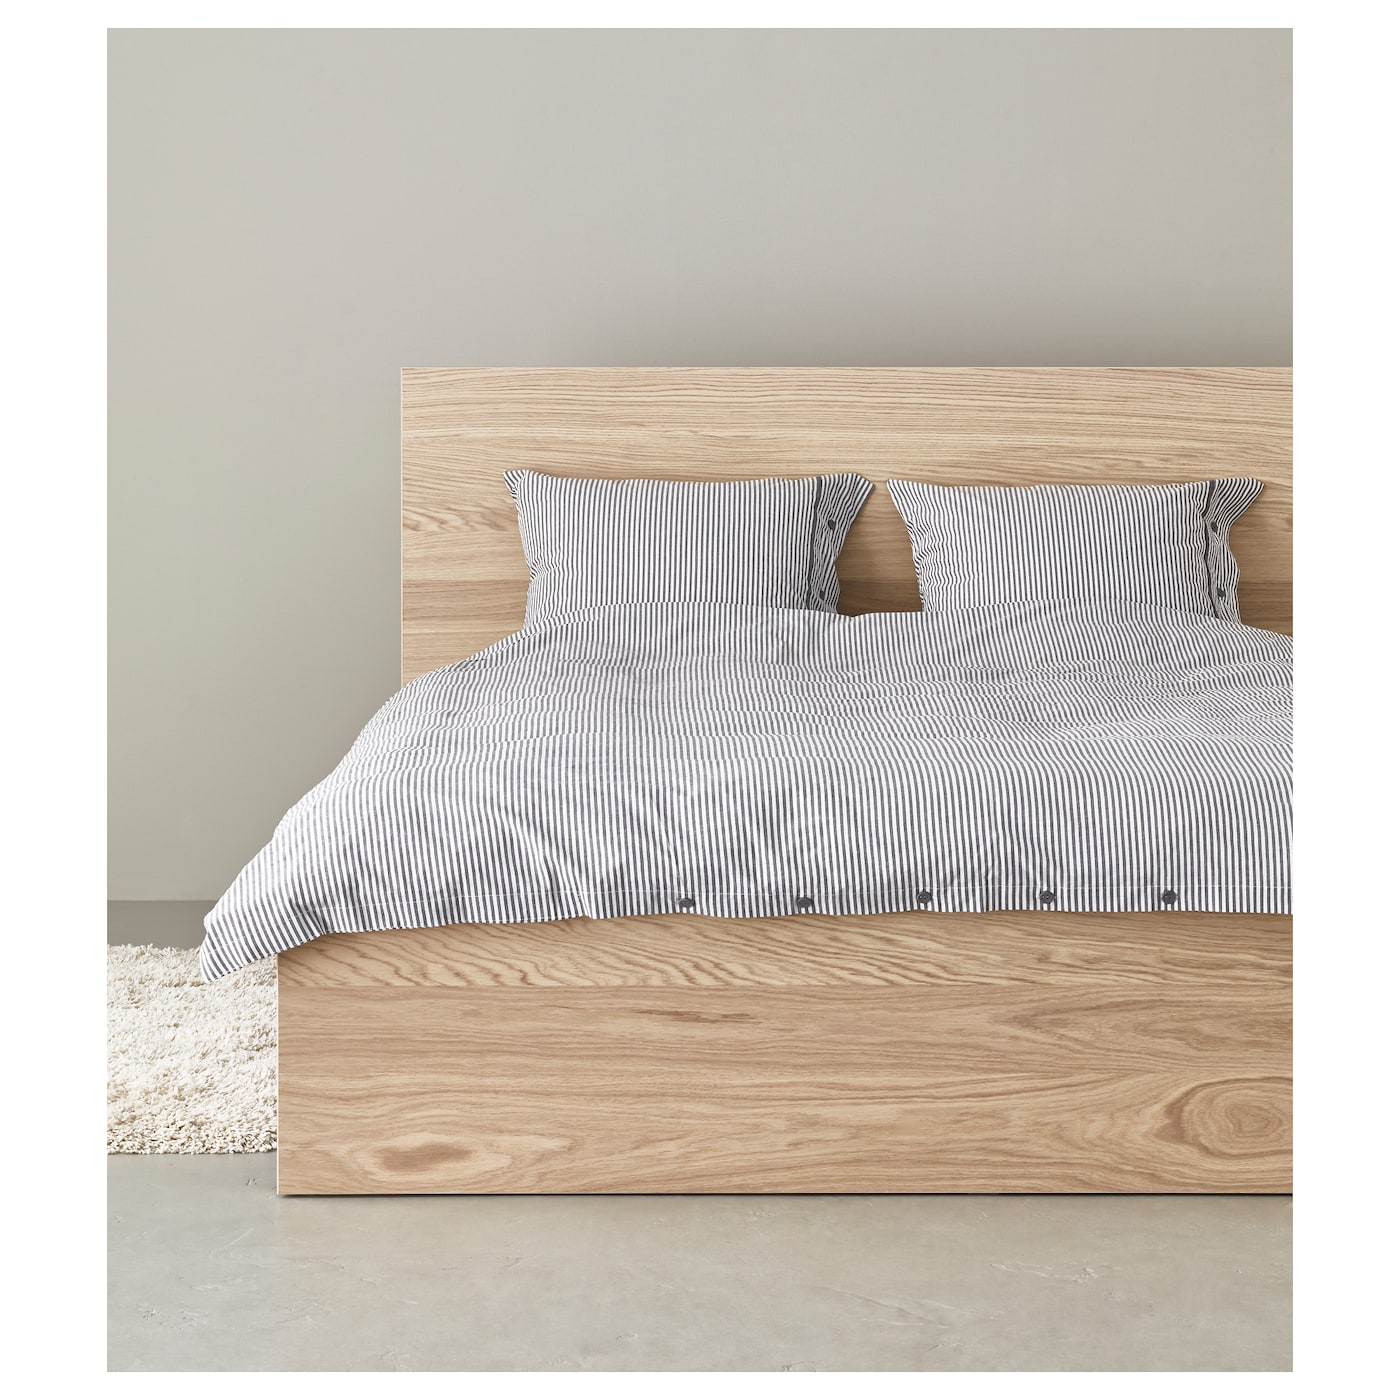 Malm bed frame high white stained oak veneer lur y standard double ikea - Tete de lit ikea malm ...